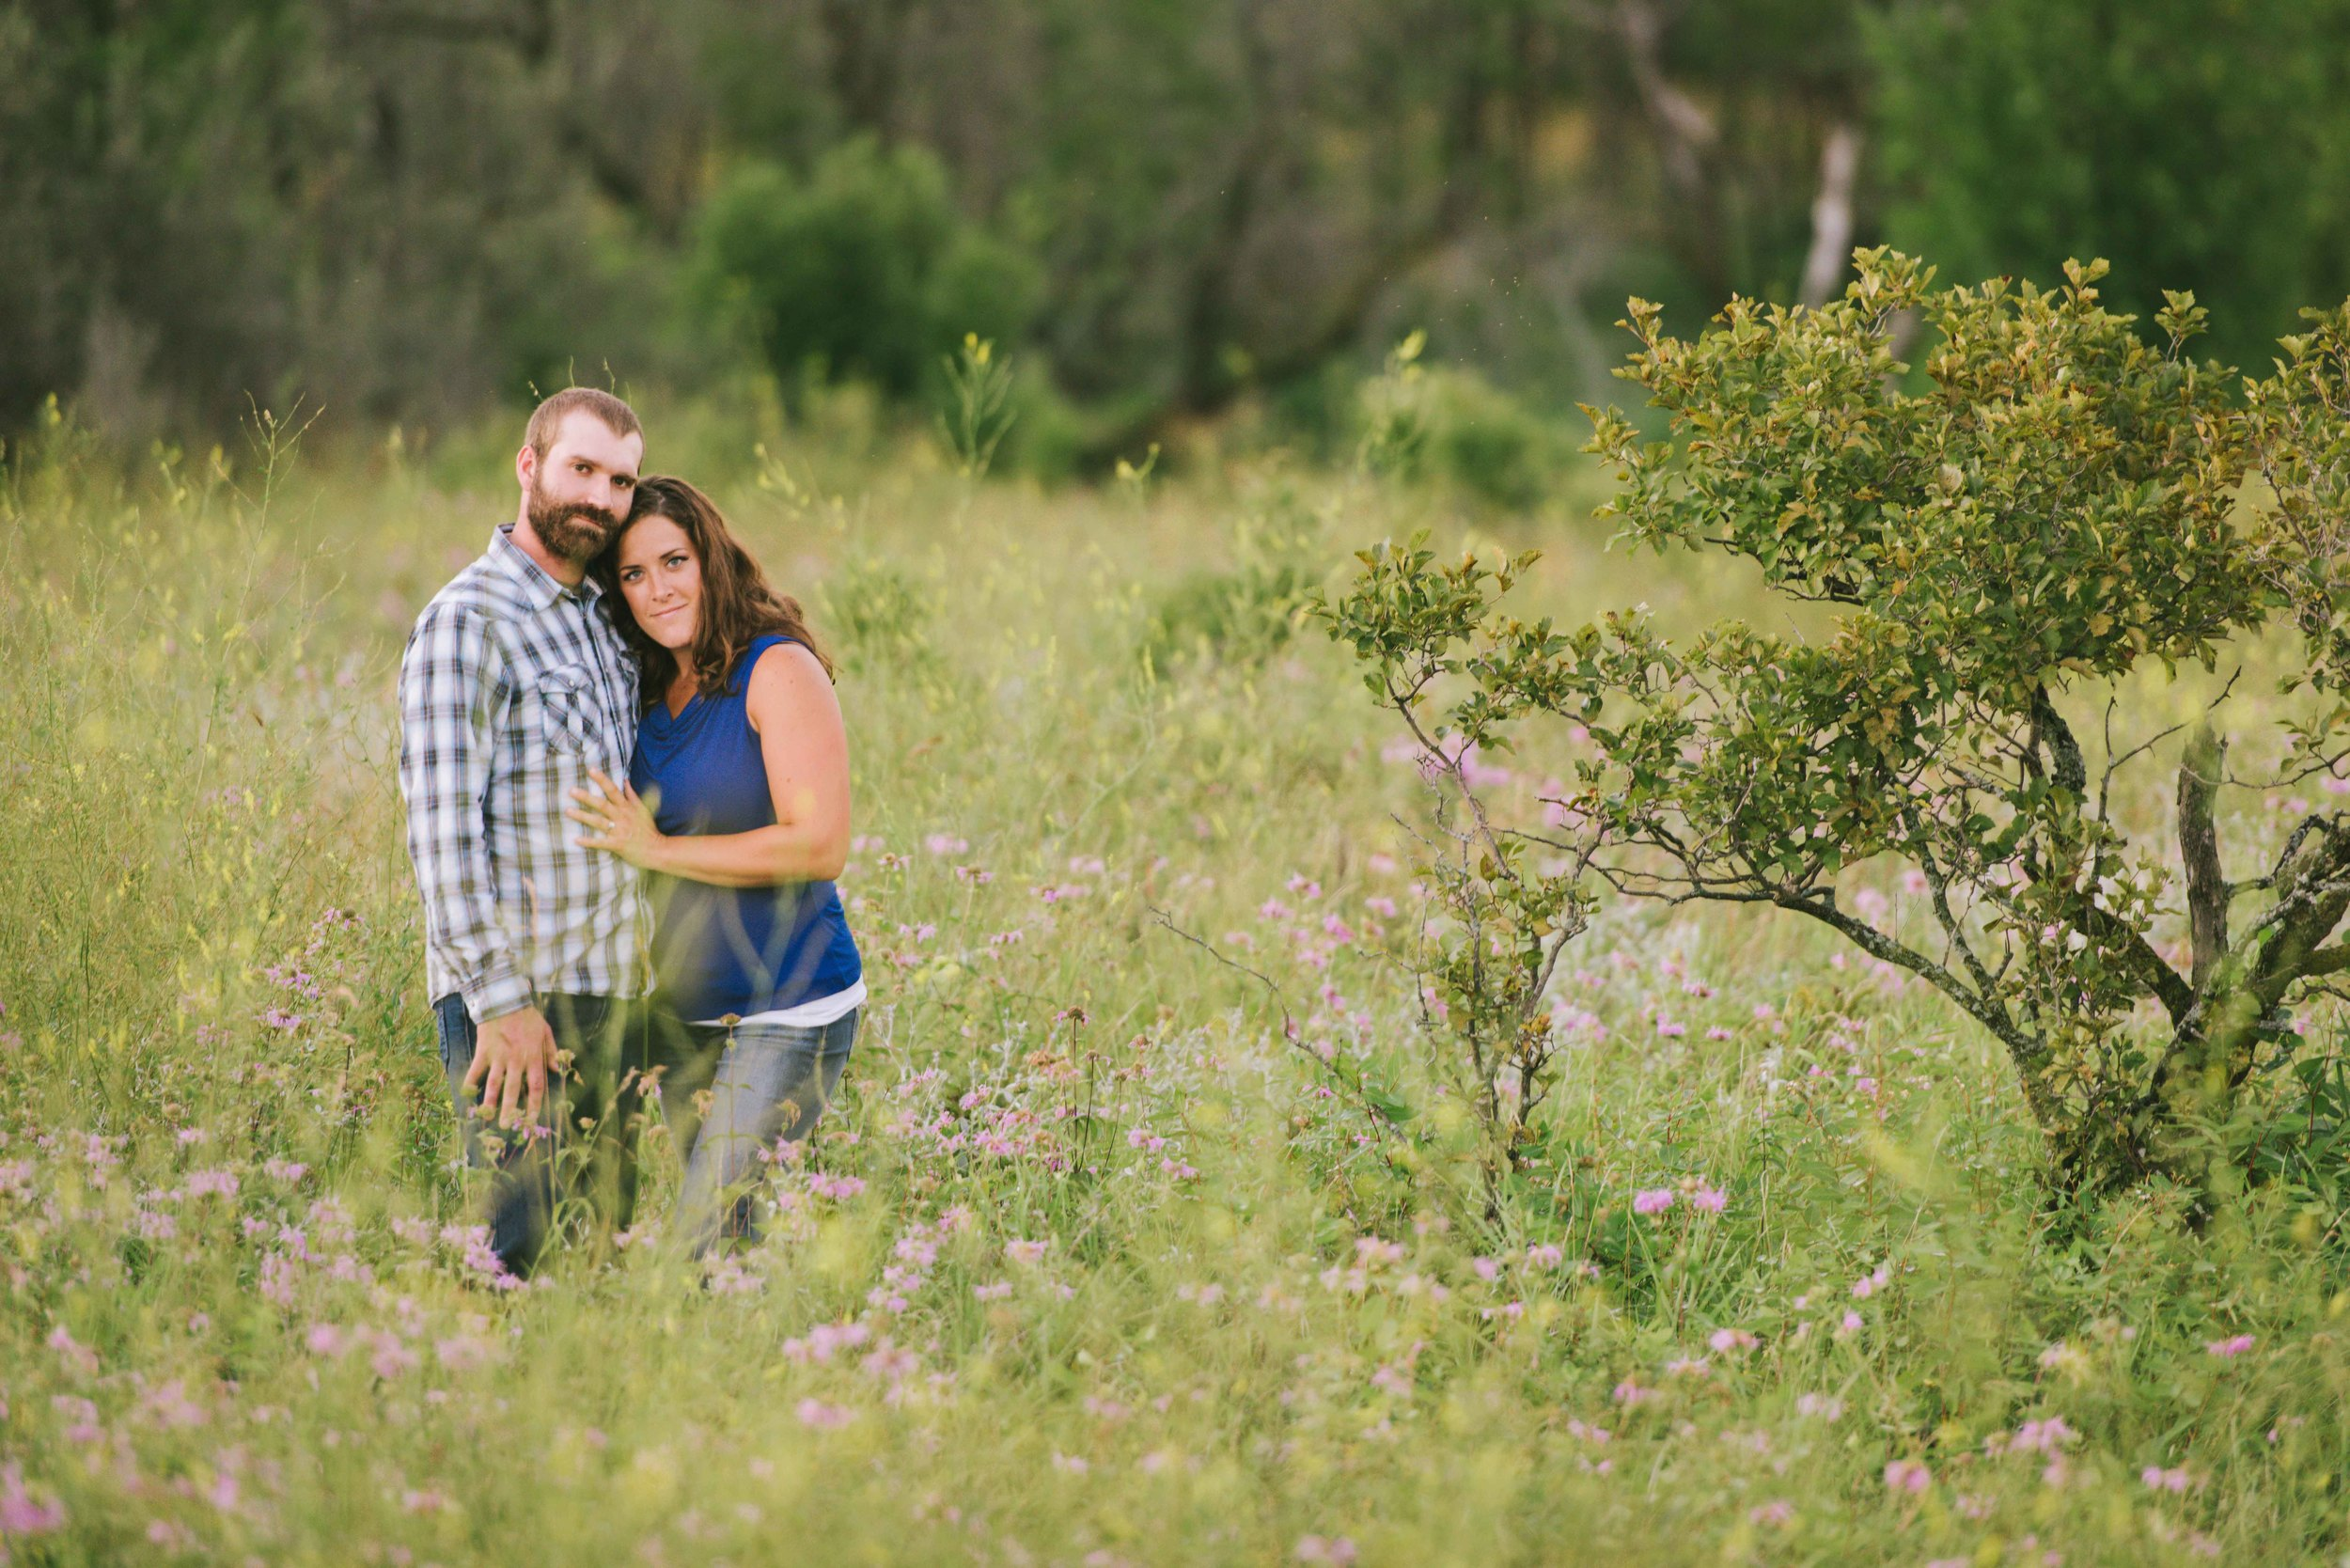 July15 north dakota wedding engagements bride groom colorado fort collins loveland family photography Photographer Debi Rae Photography-13.jpg